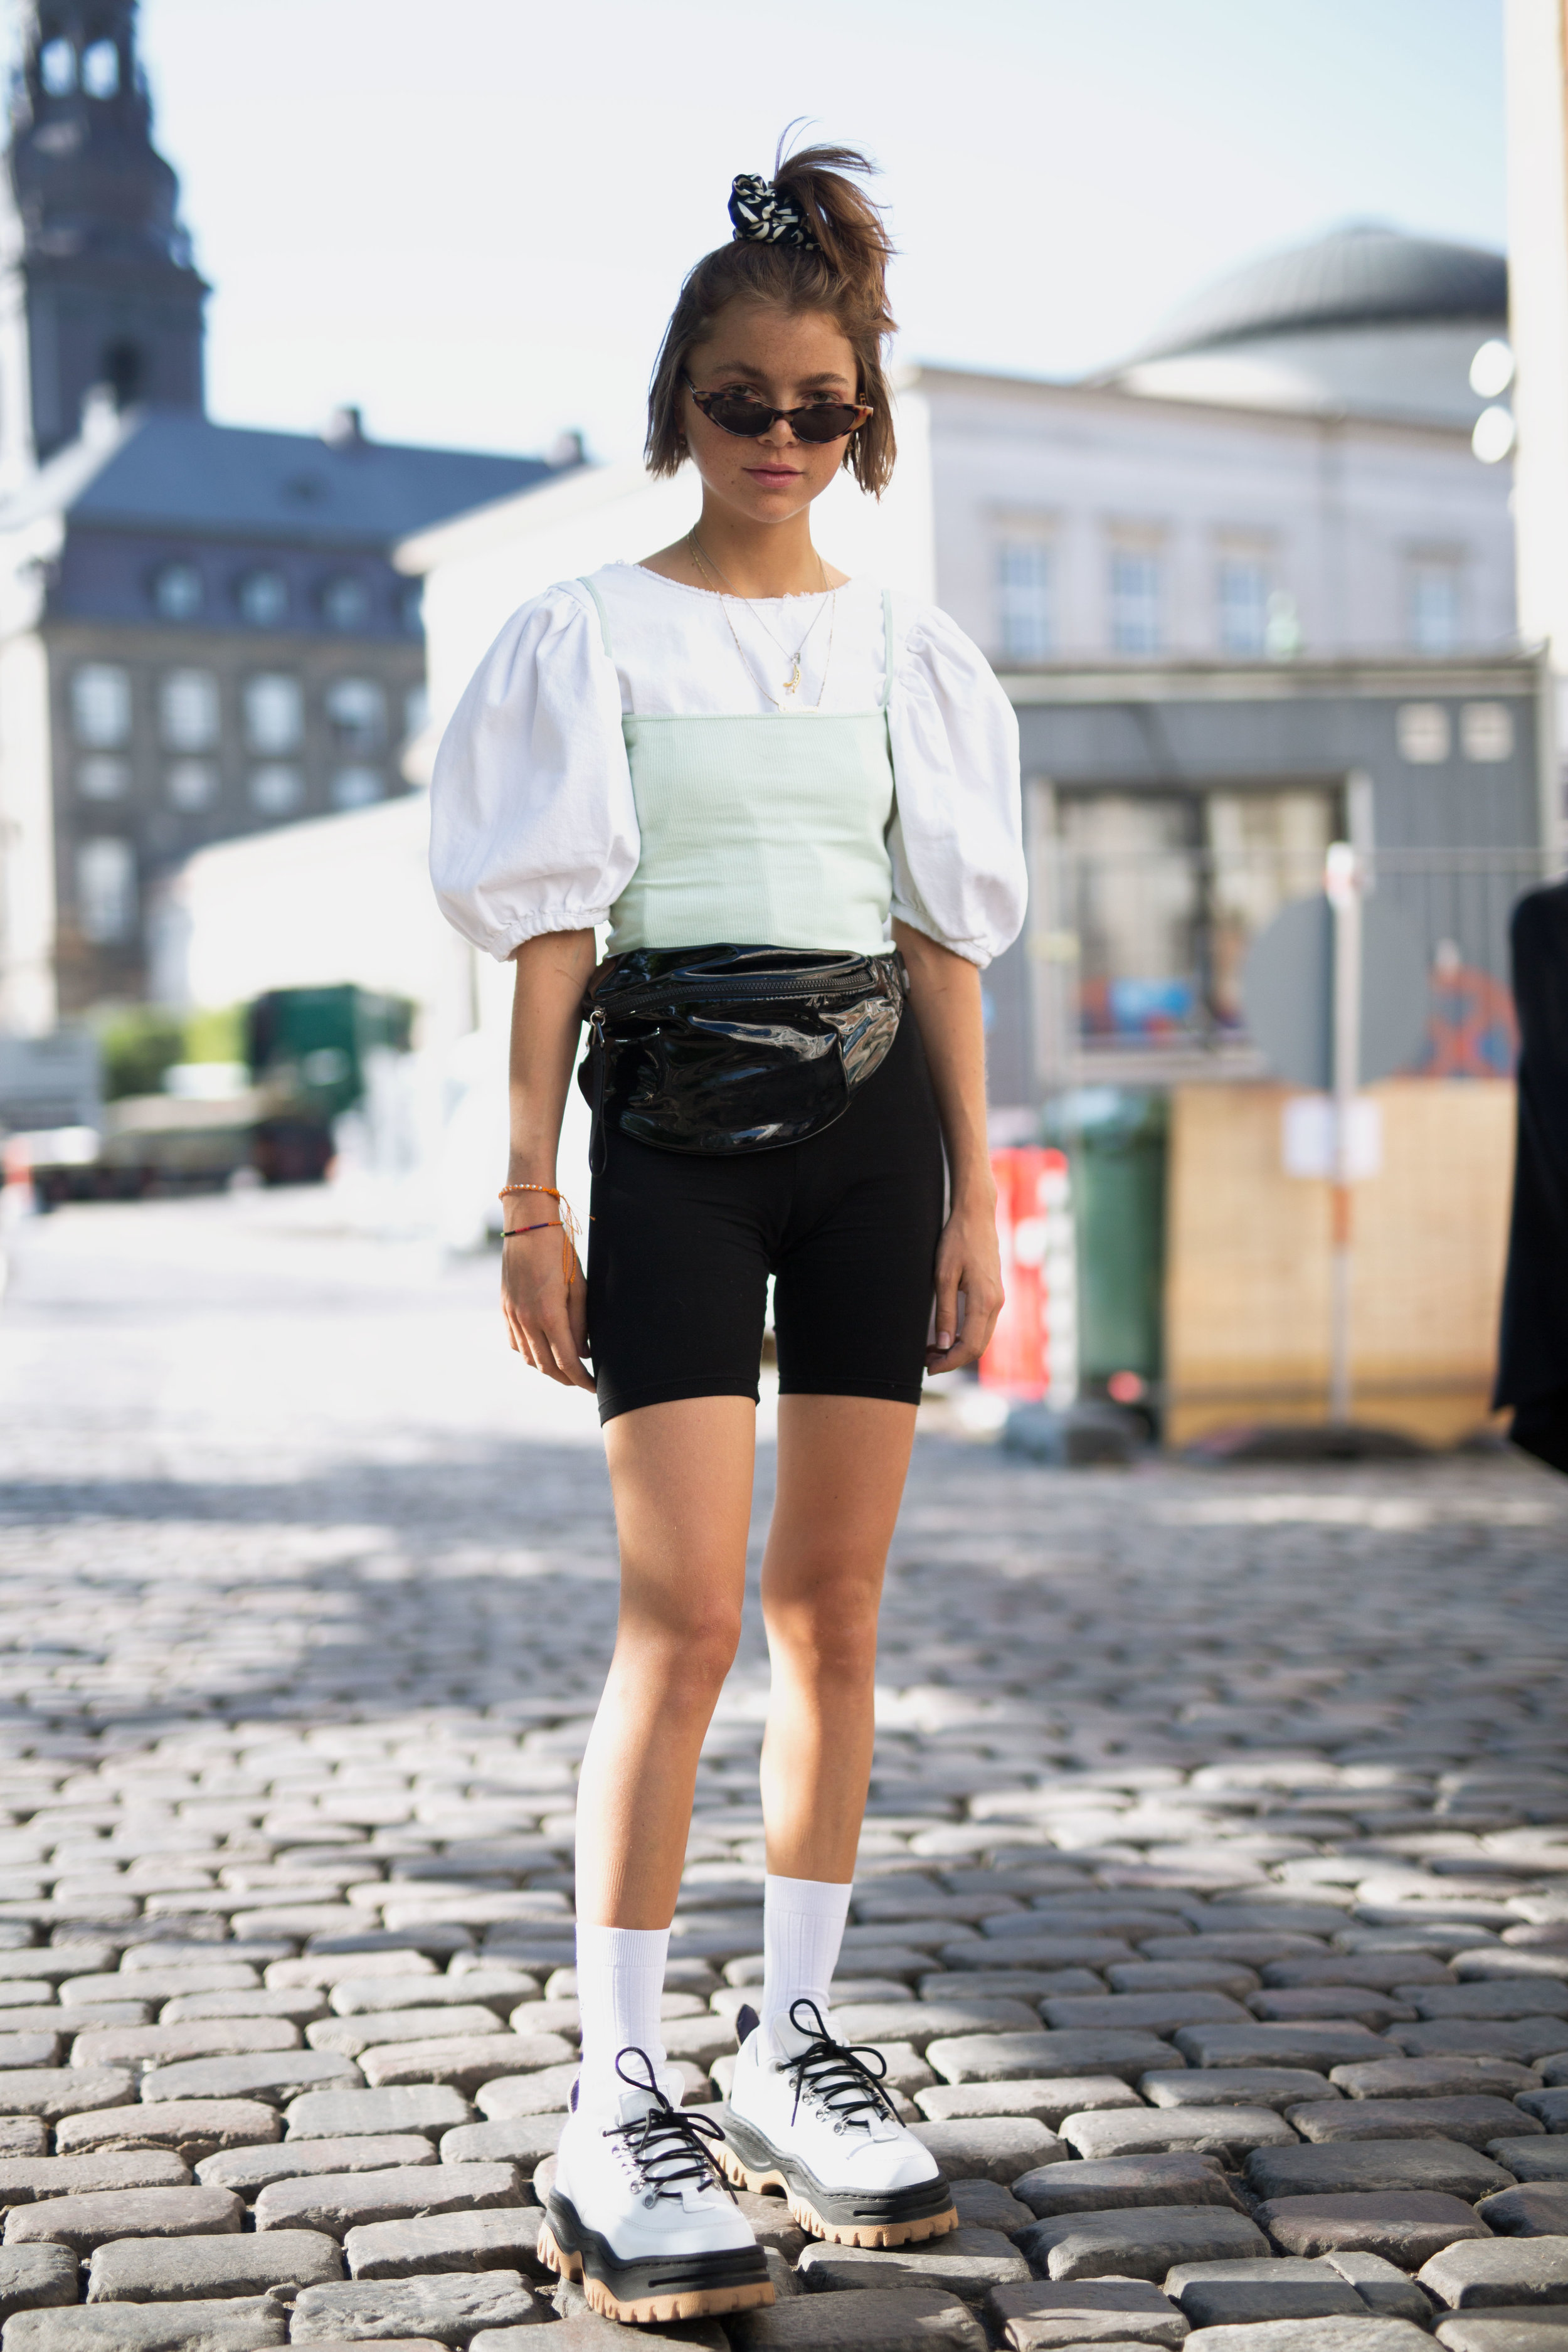 TheStreetland_Copenhagen_Fashion_Week_SS19_42.jpg